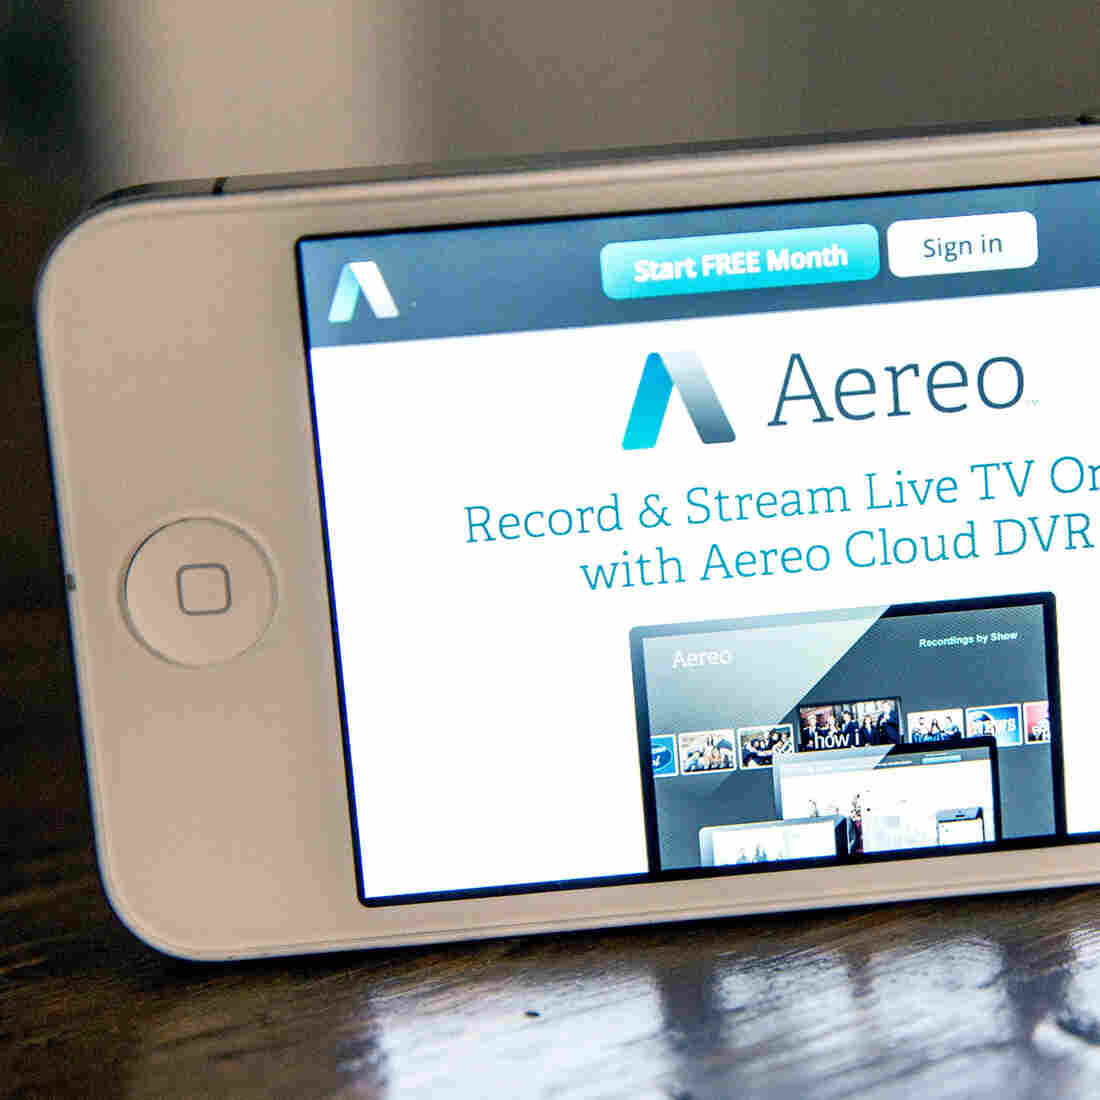 Aereo's TV Streaming Service Is Illegal, Supreme Court Says